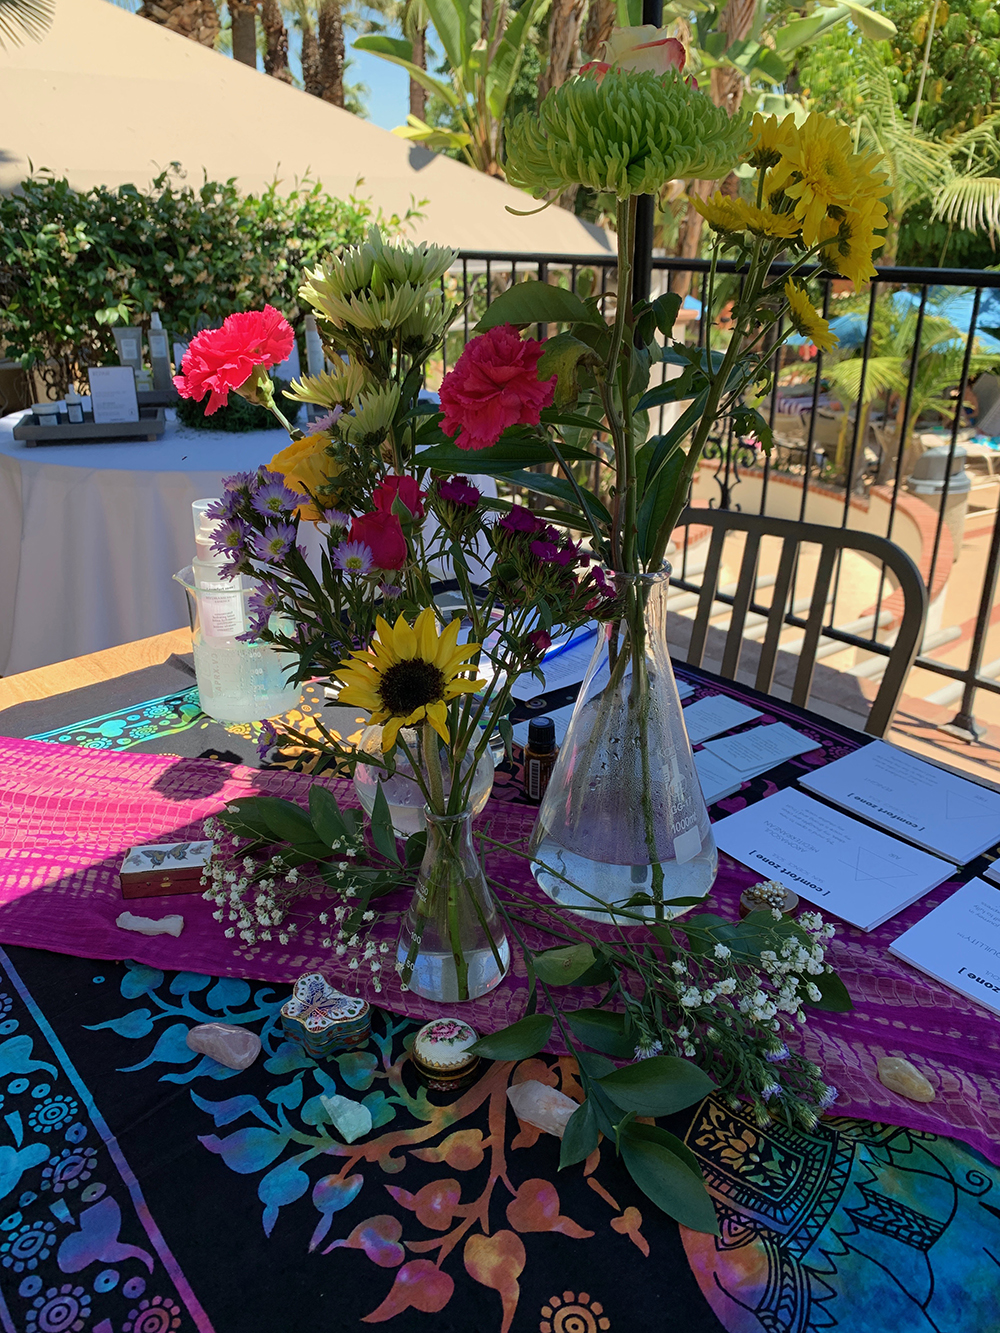 Flower reading is a Victorian pastime that helps one find guidance while reconnecting with nature.